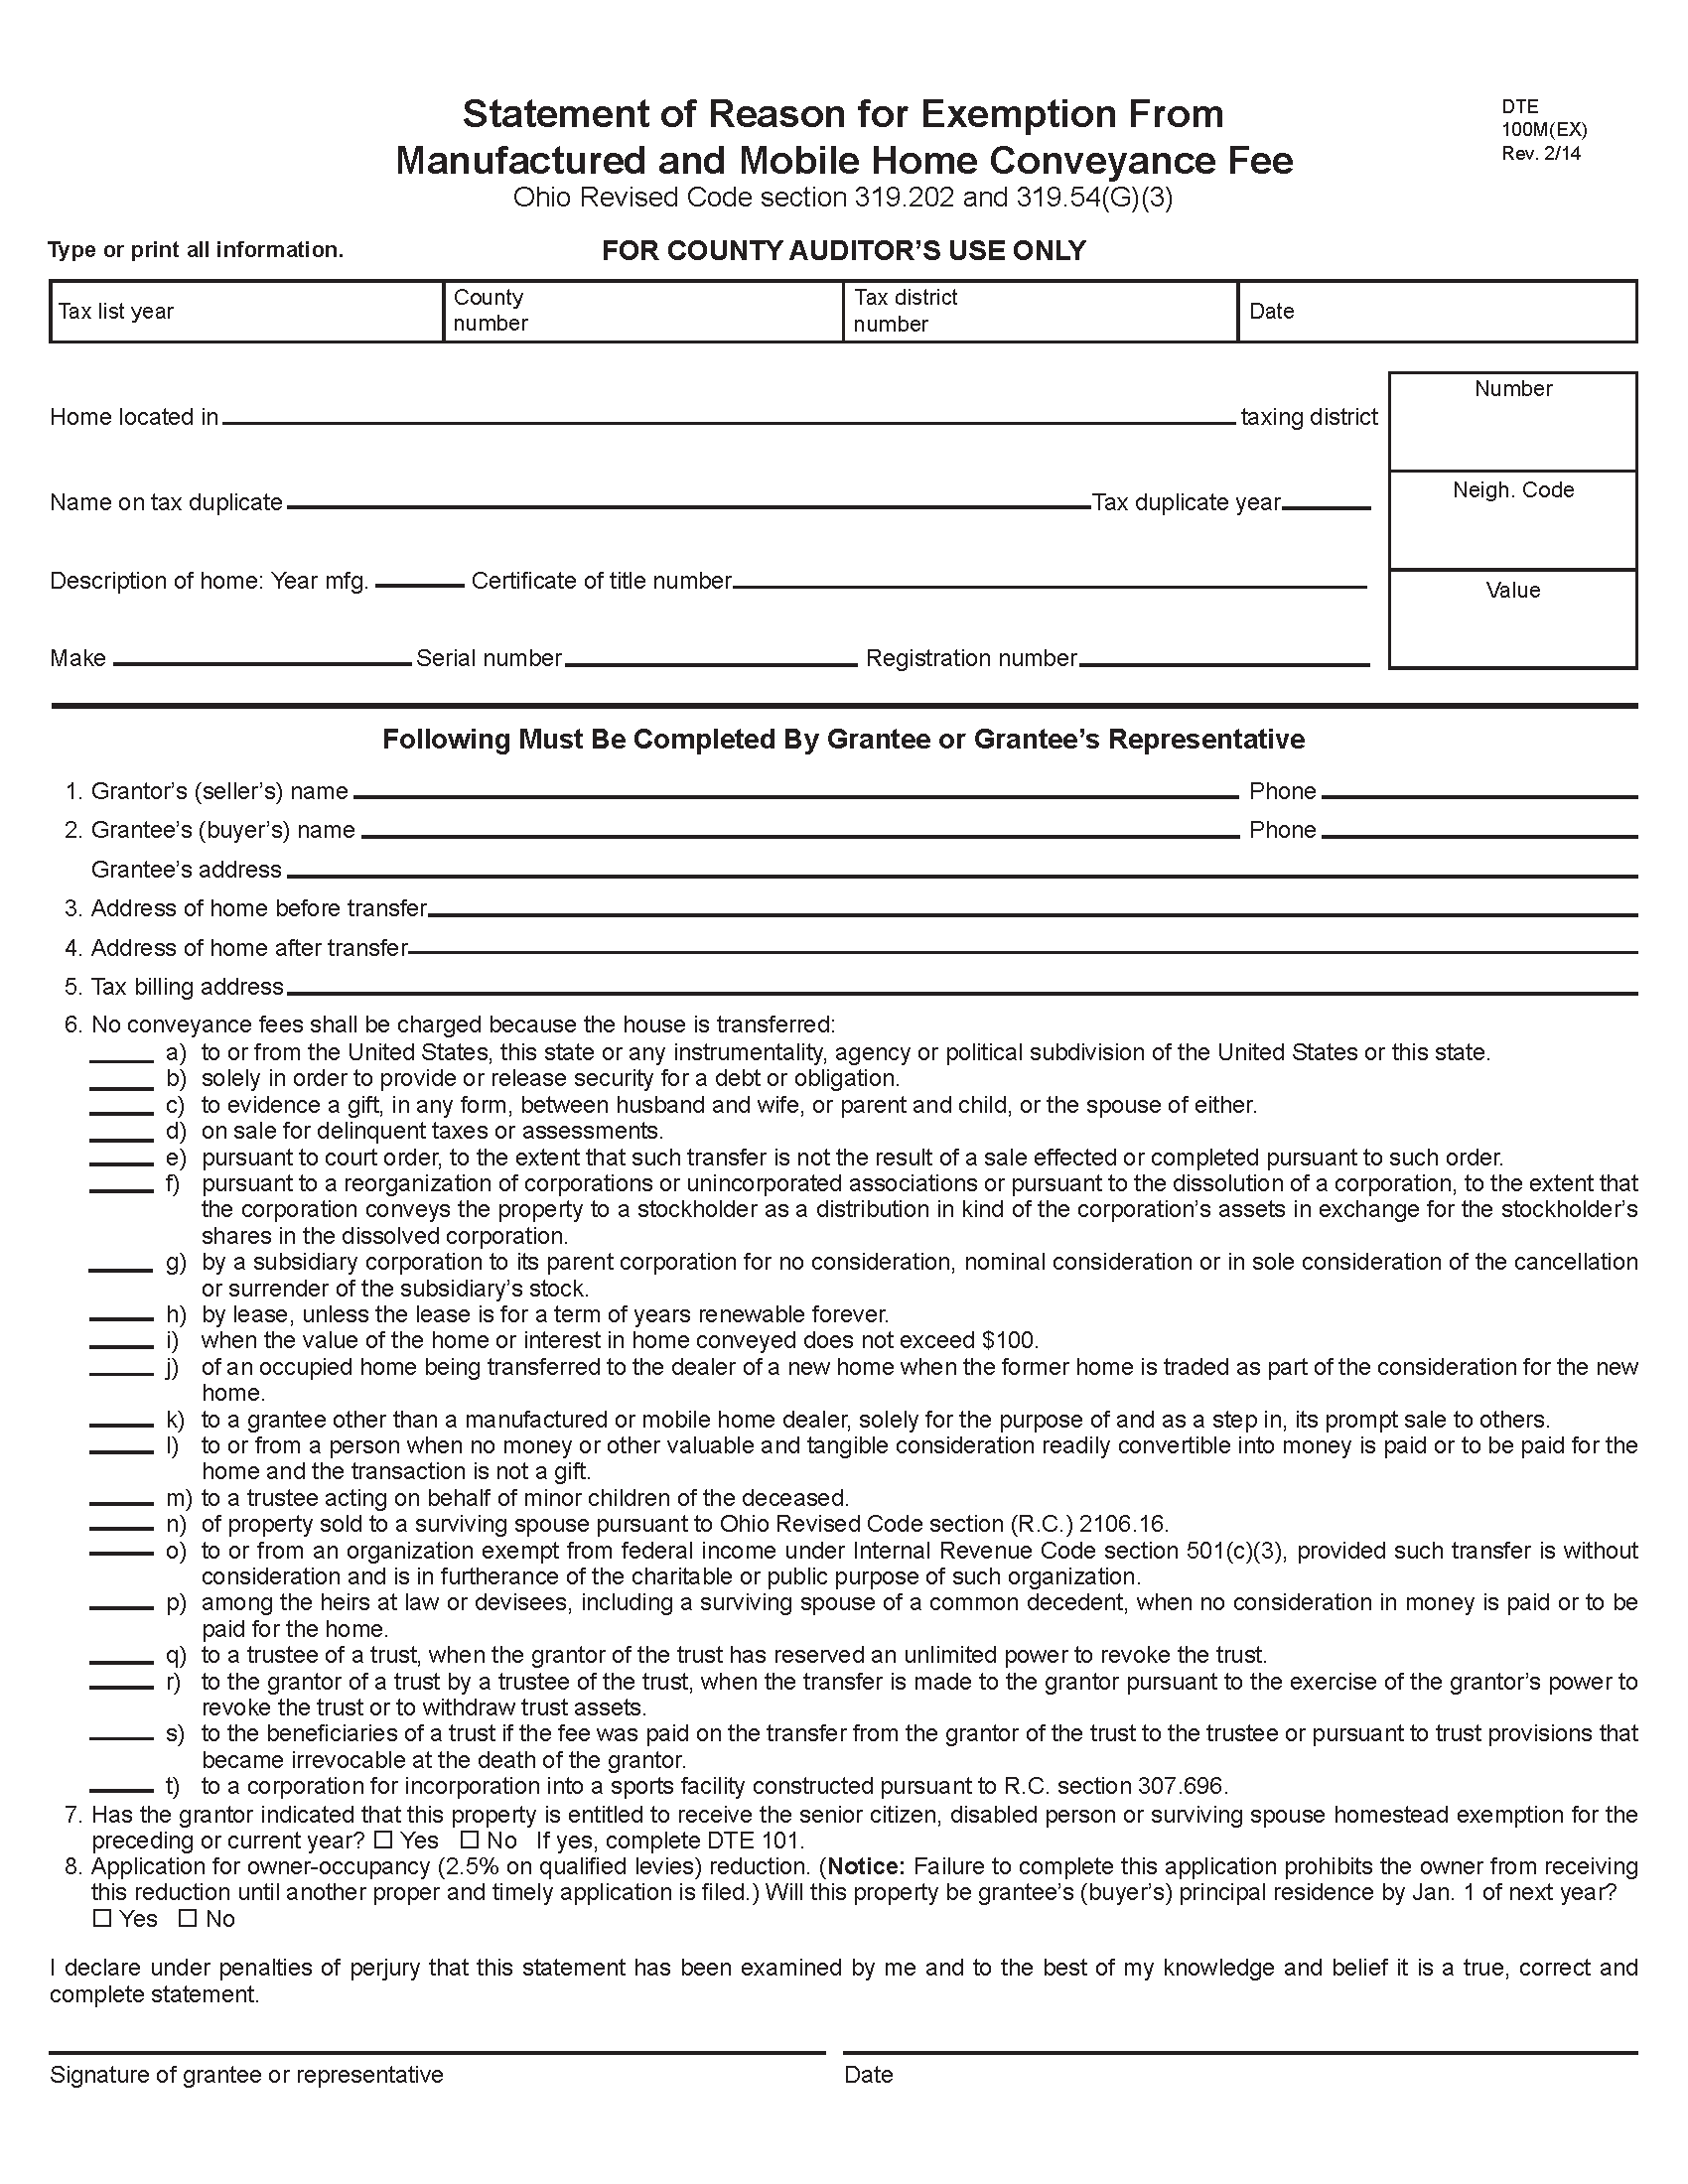 Manufactured or Mobile Home Conveyance Form DTE 100M(EX)